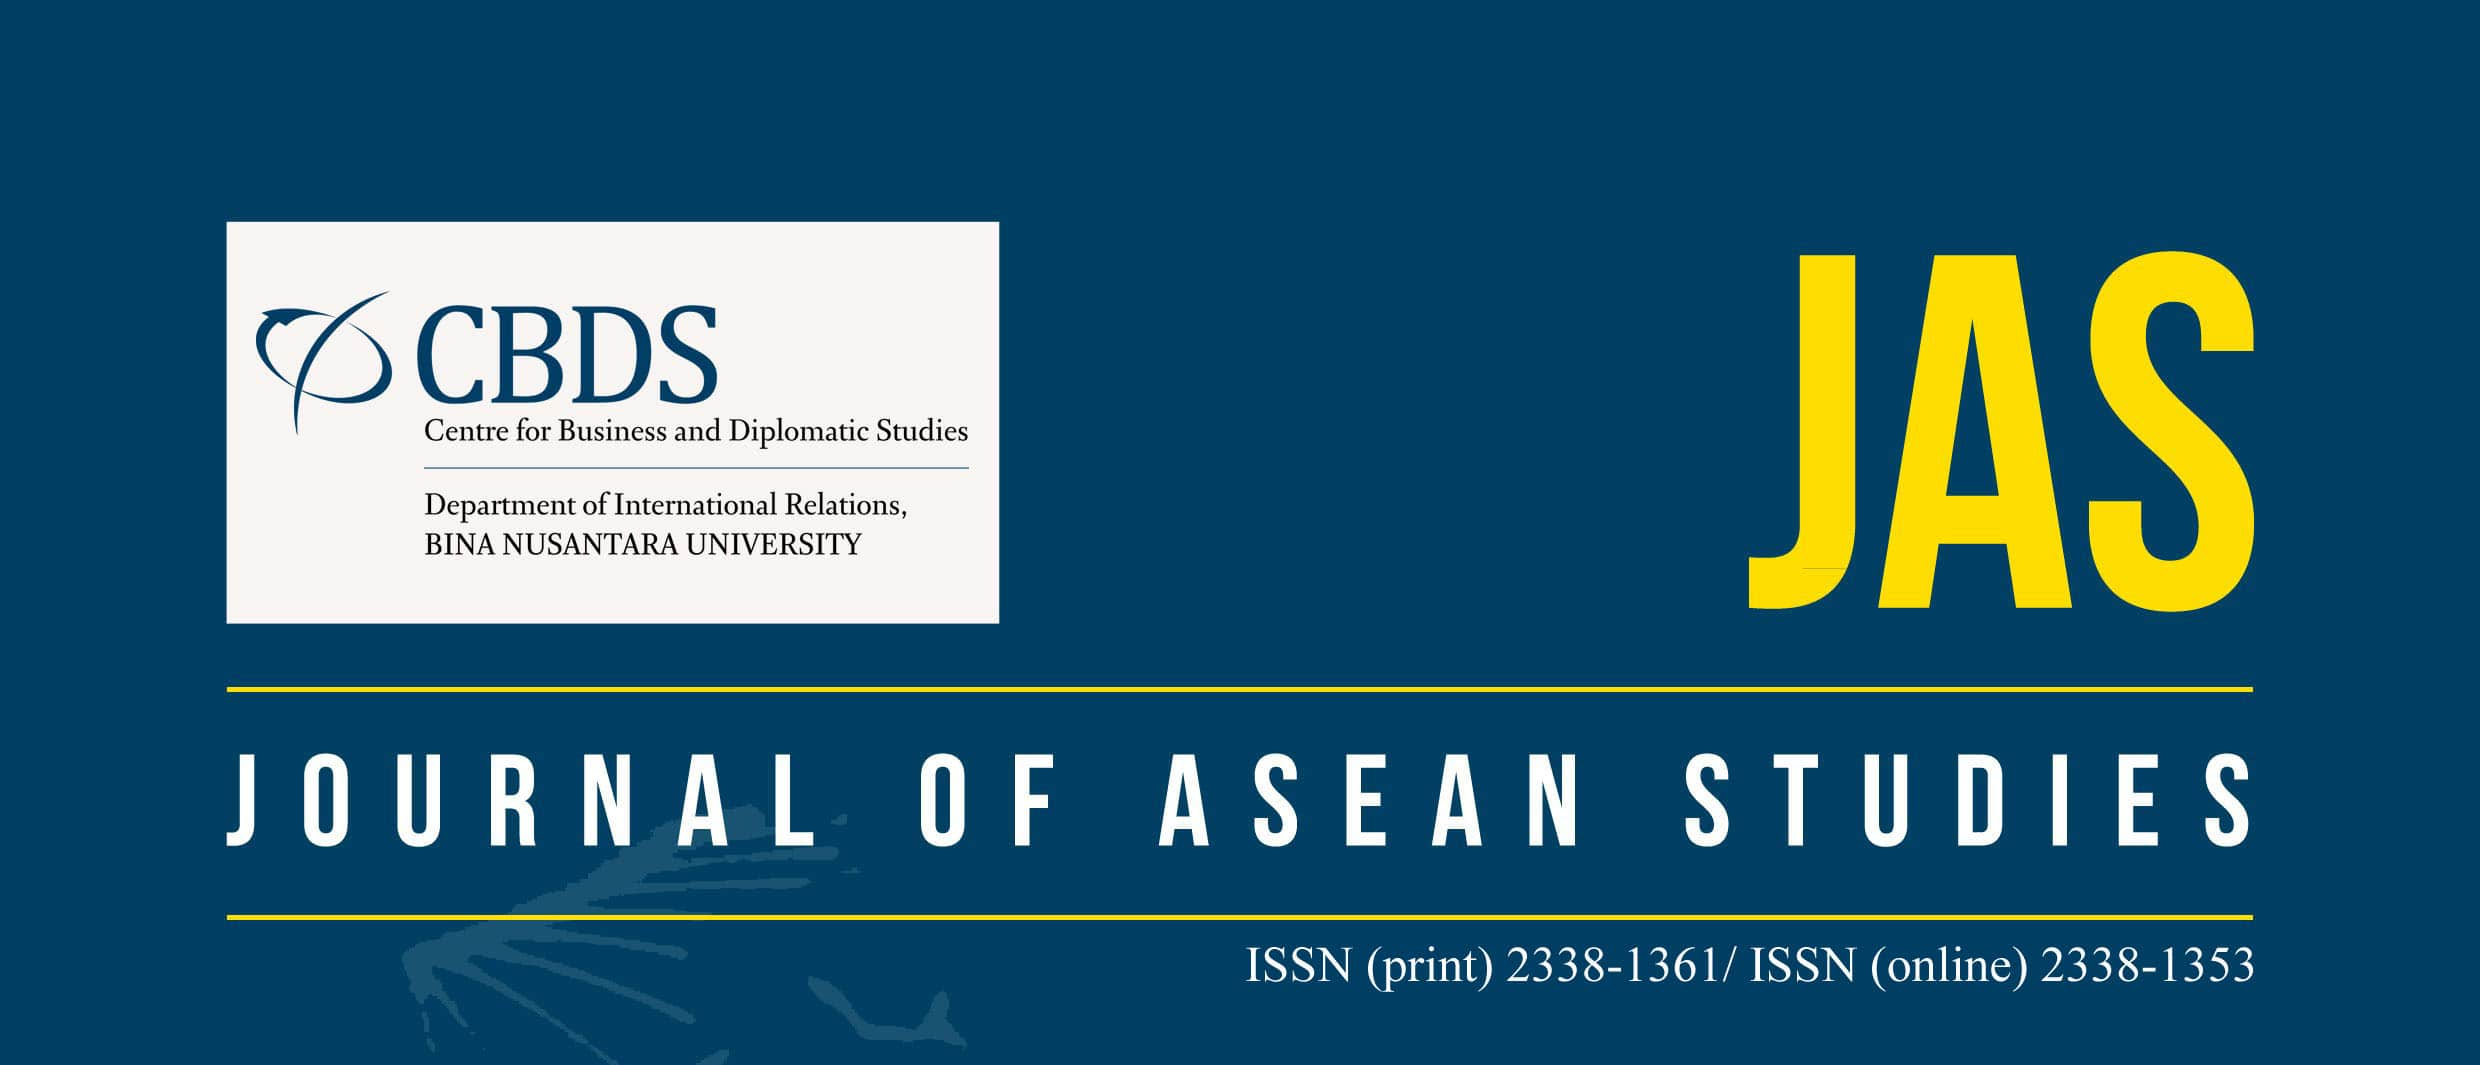 New Edition of Journal of ASEAN Studies has been published